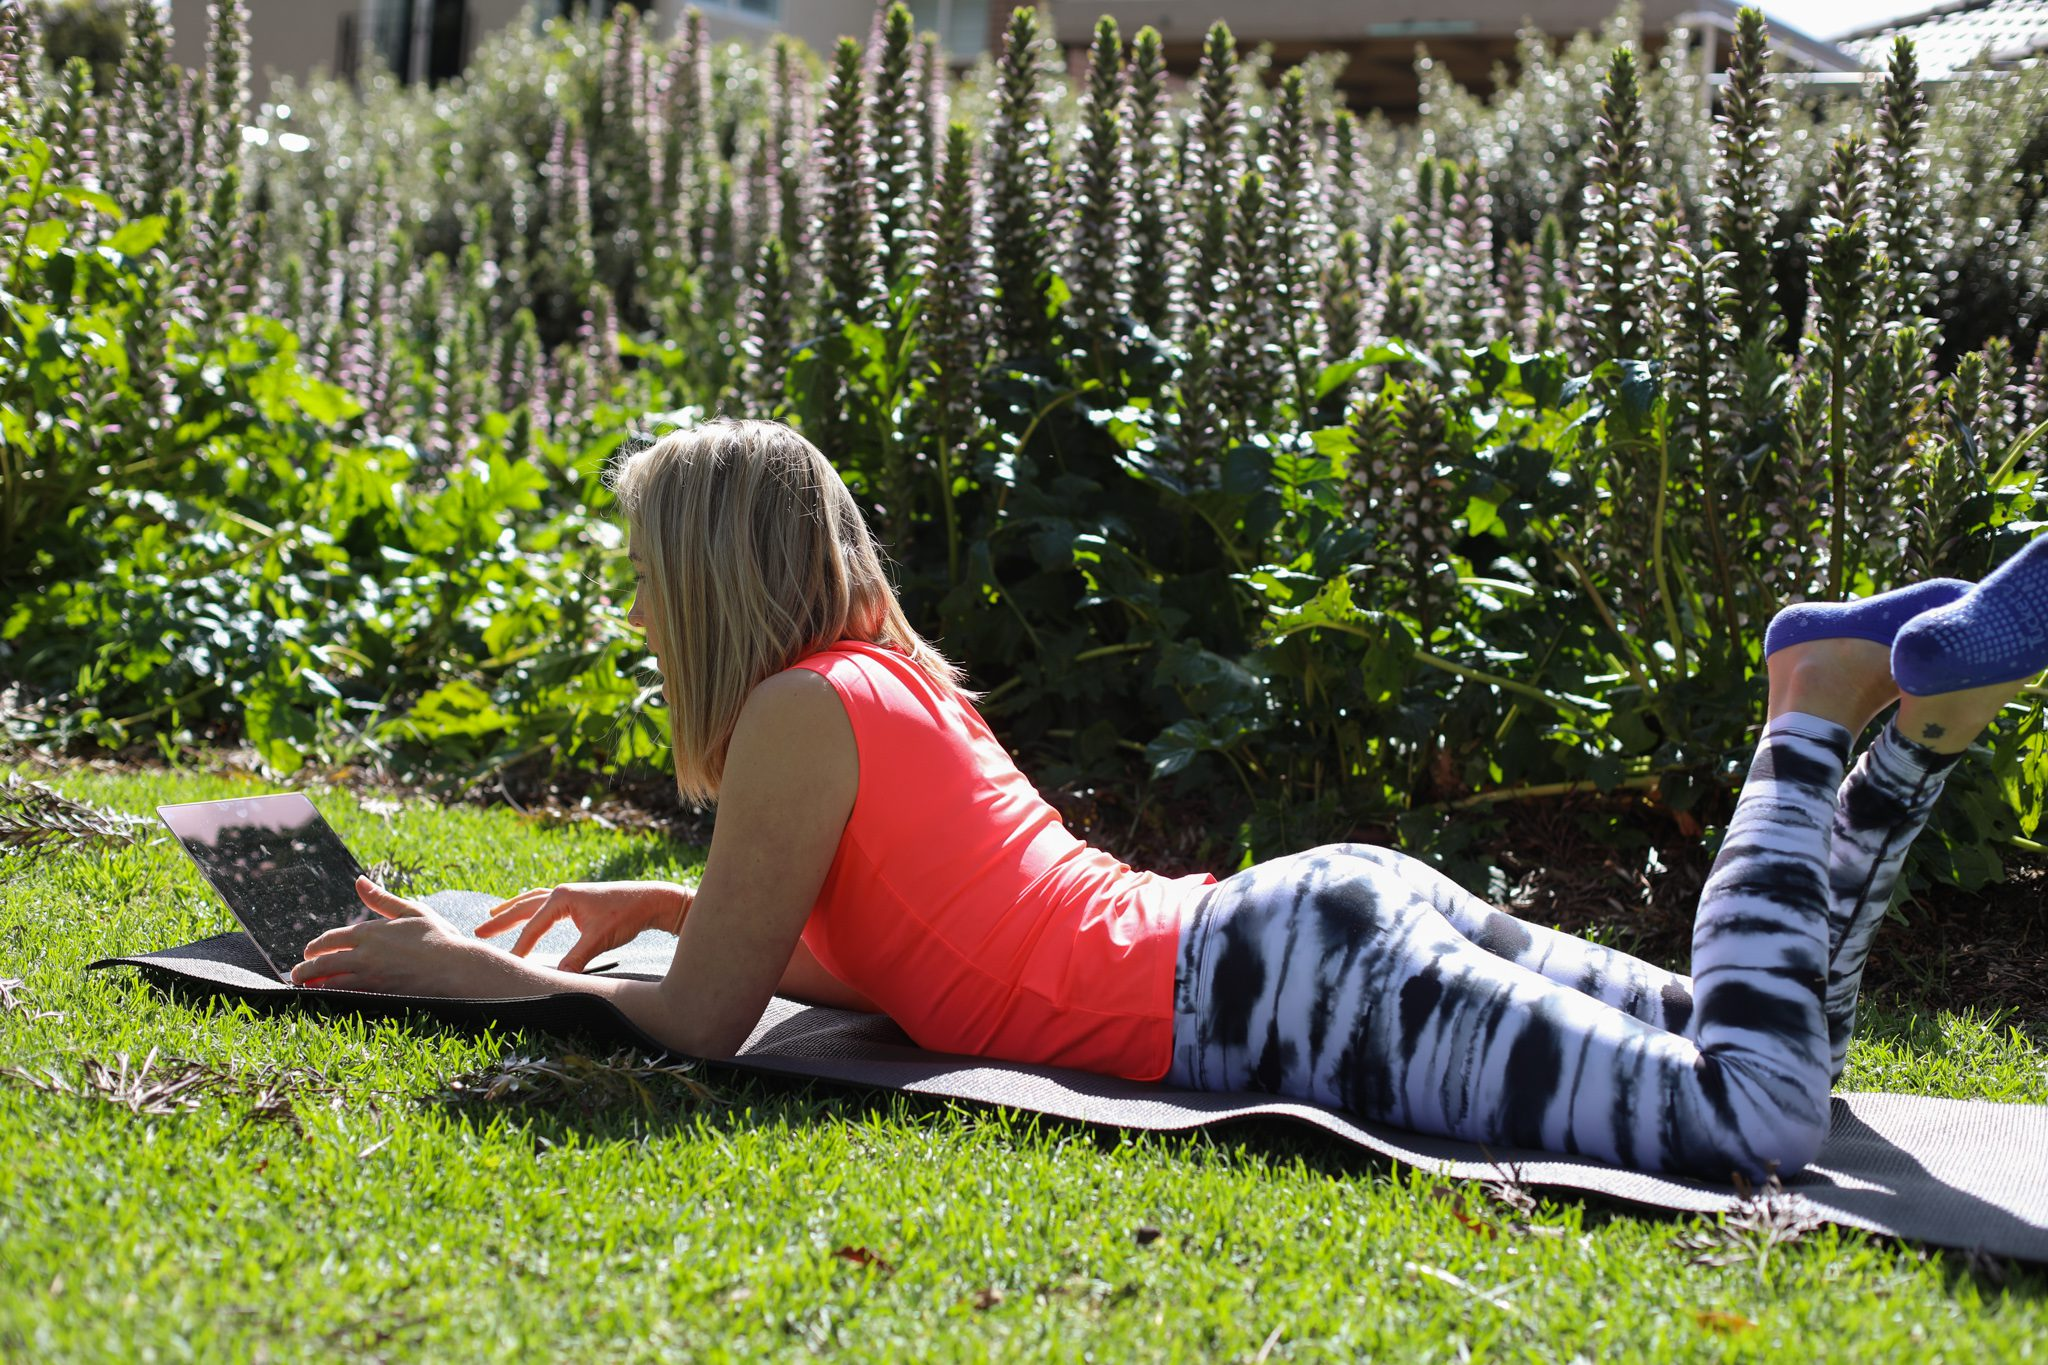 Female watching Pilates exercise in the garden